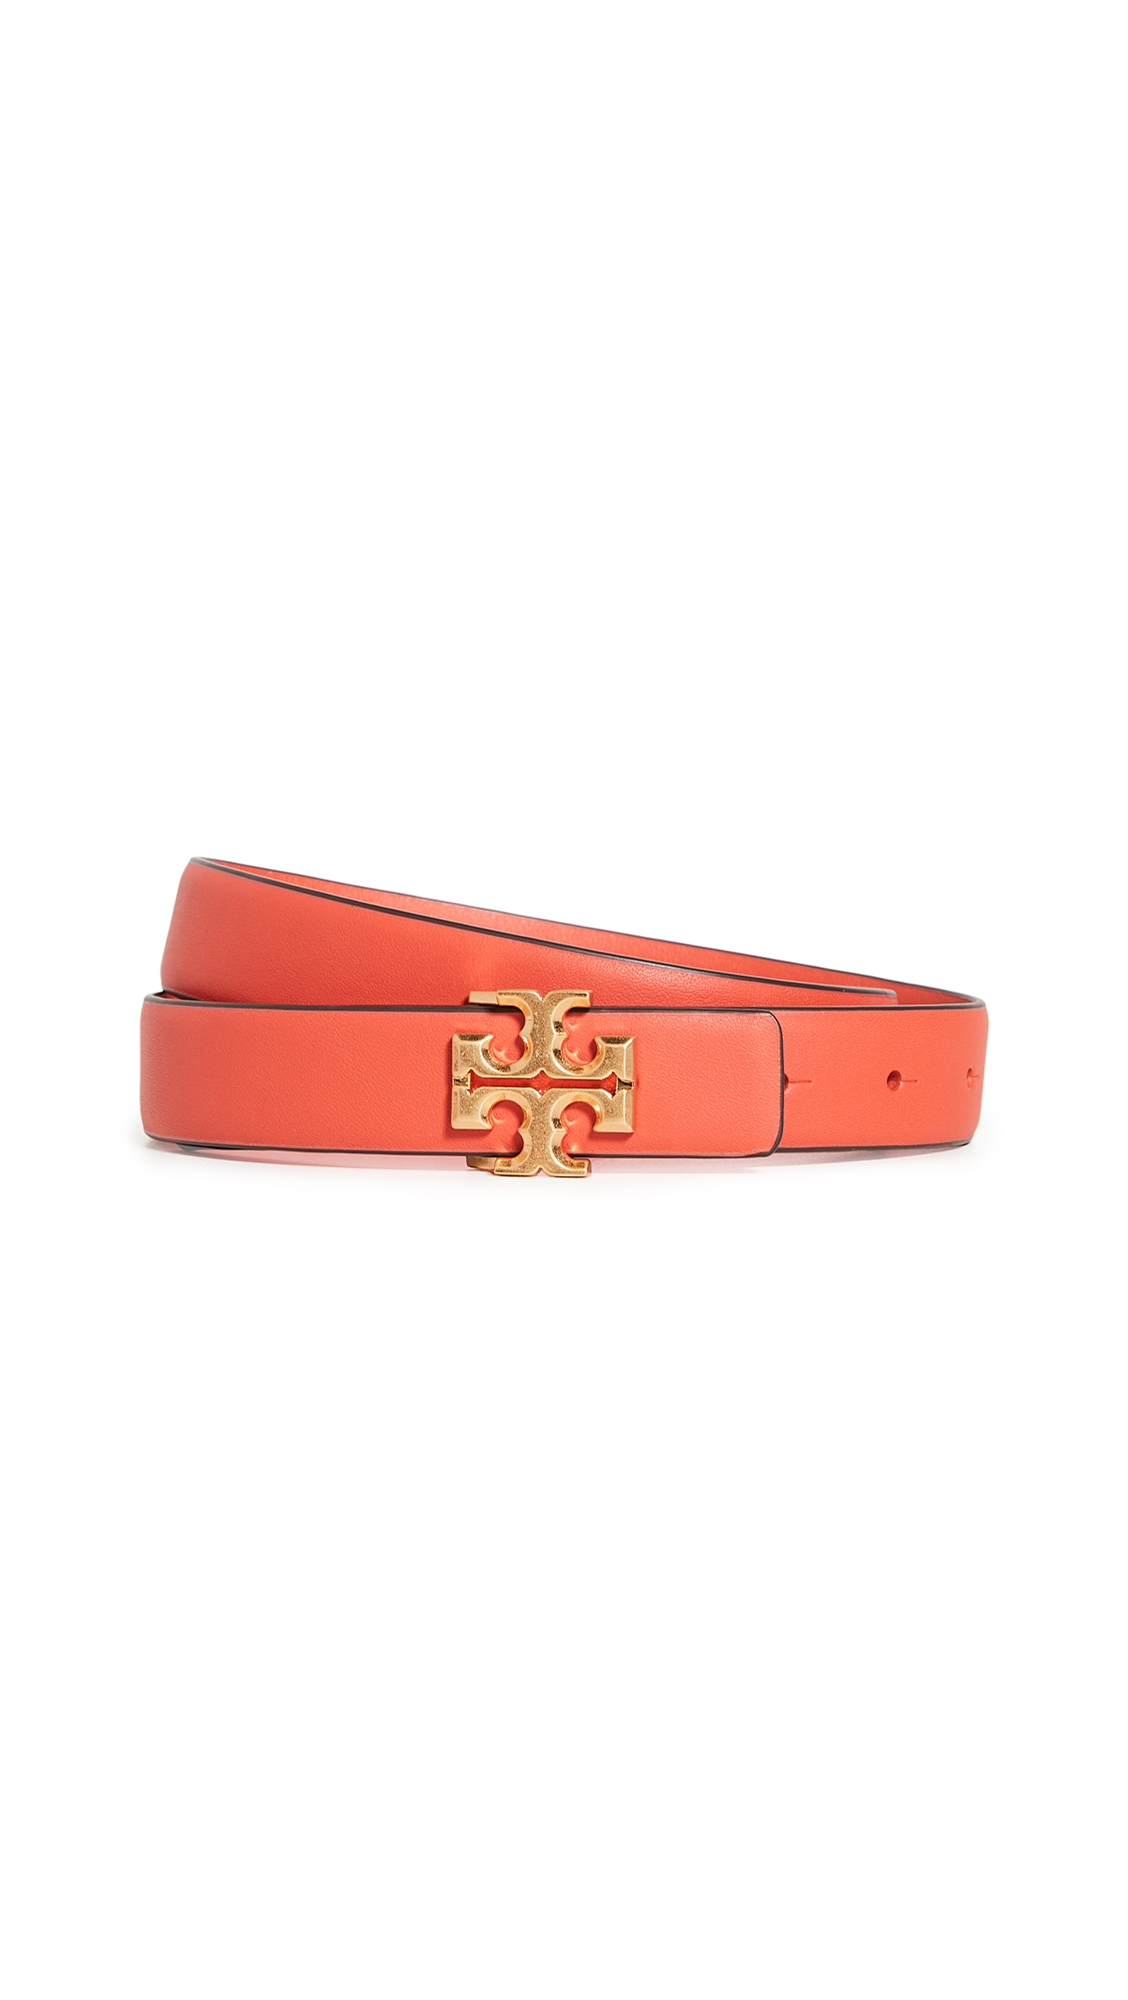 Tory Burch Kira Logo Belt